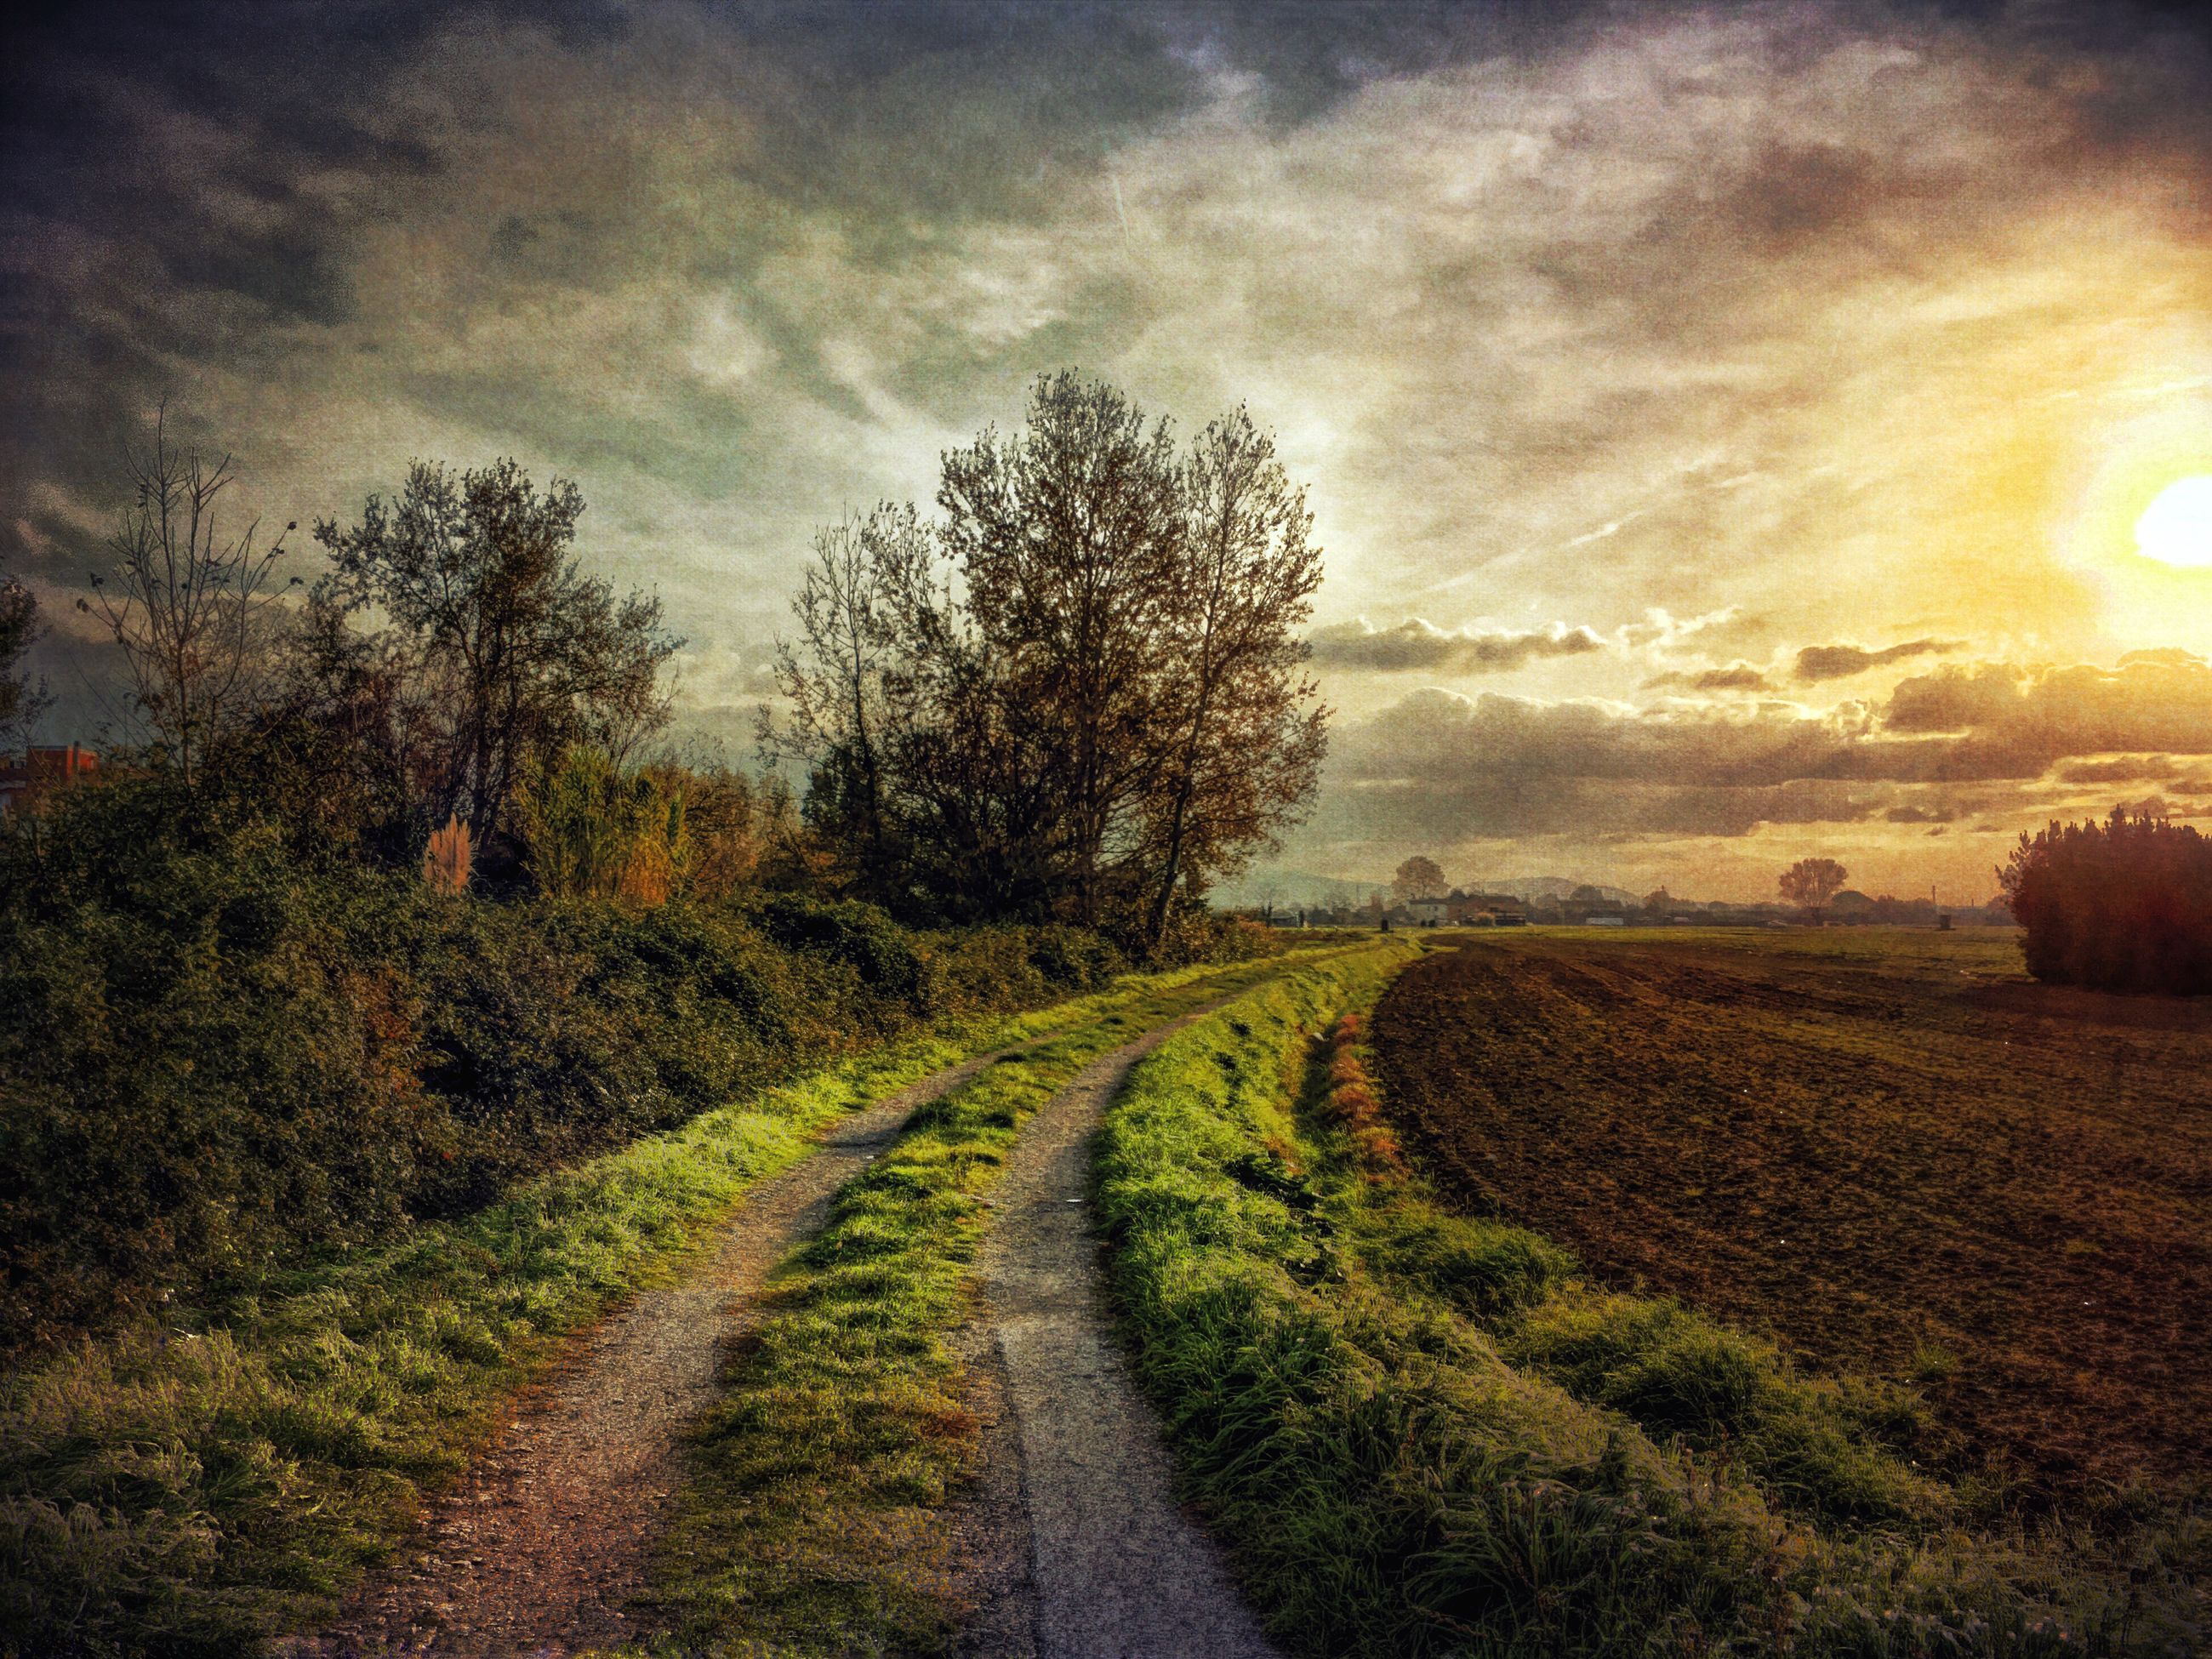 the way forward, sky, landscape, tranquility, tranquil scene, field, diminishing perspective, tree, vanishing point, road, dirt road, nature, rural scene, transportation, country road, cloud - sky, scenics, beauty in nature, growth, agriculture